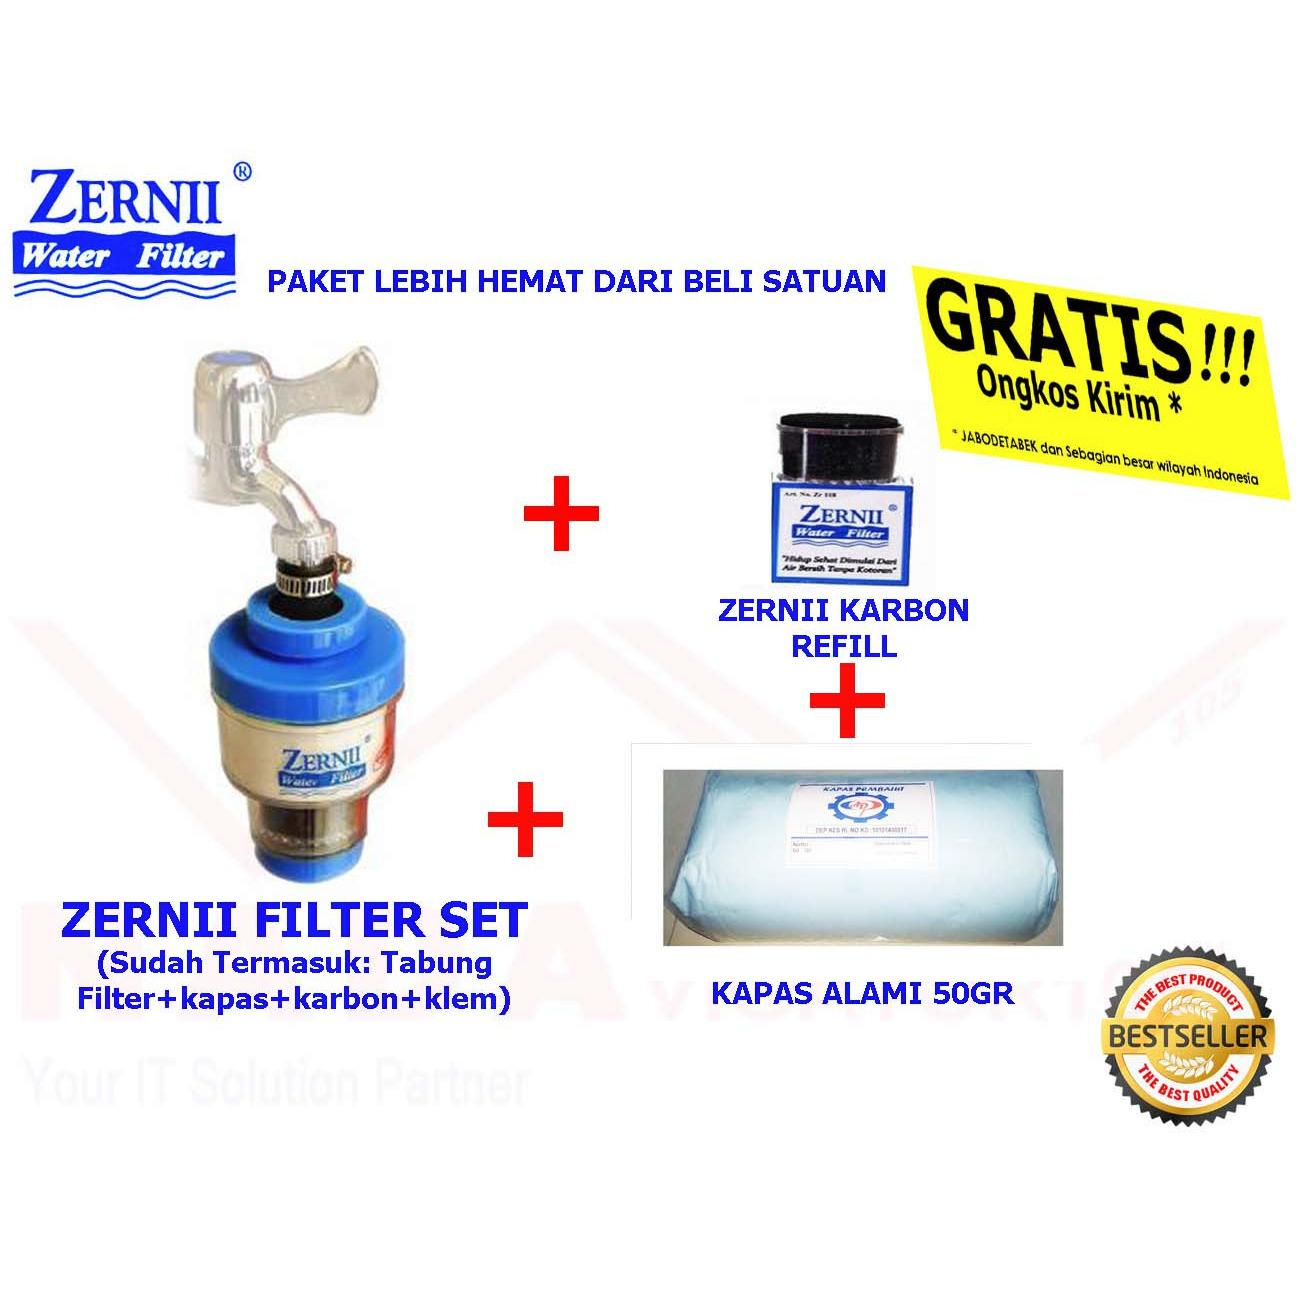 Paket Zernii Filter Air Zernii Filter Kapas 25gr Filter Karbon Aktif Filter Paket Hemat Saringan Zerni Filter Air Carbon 1f1c1k25 By Nadavigator 105.